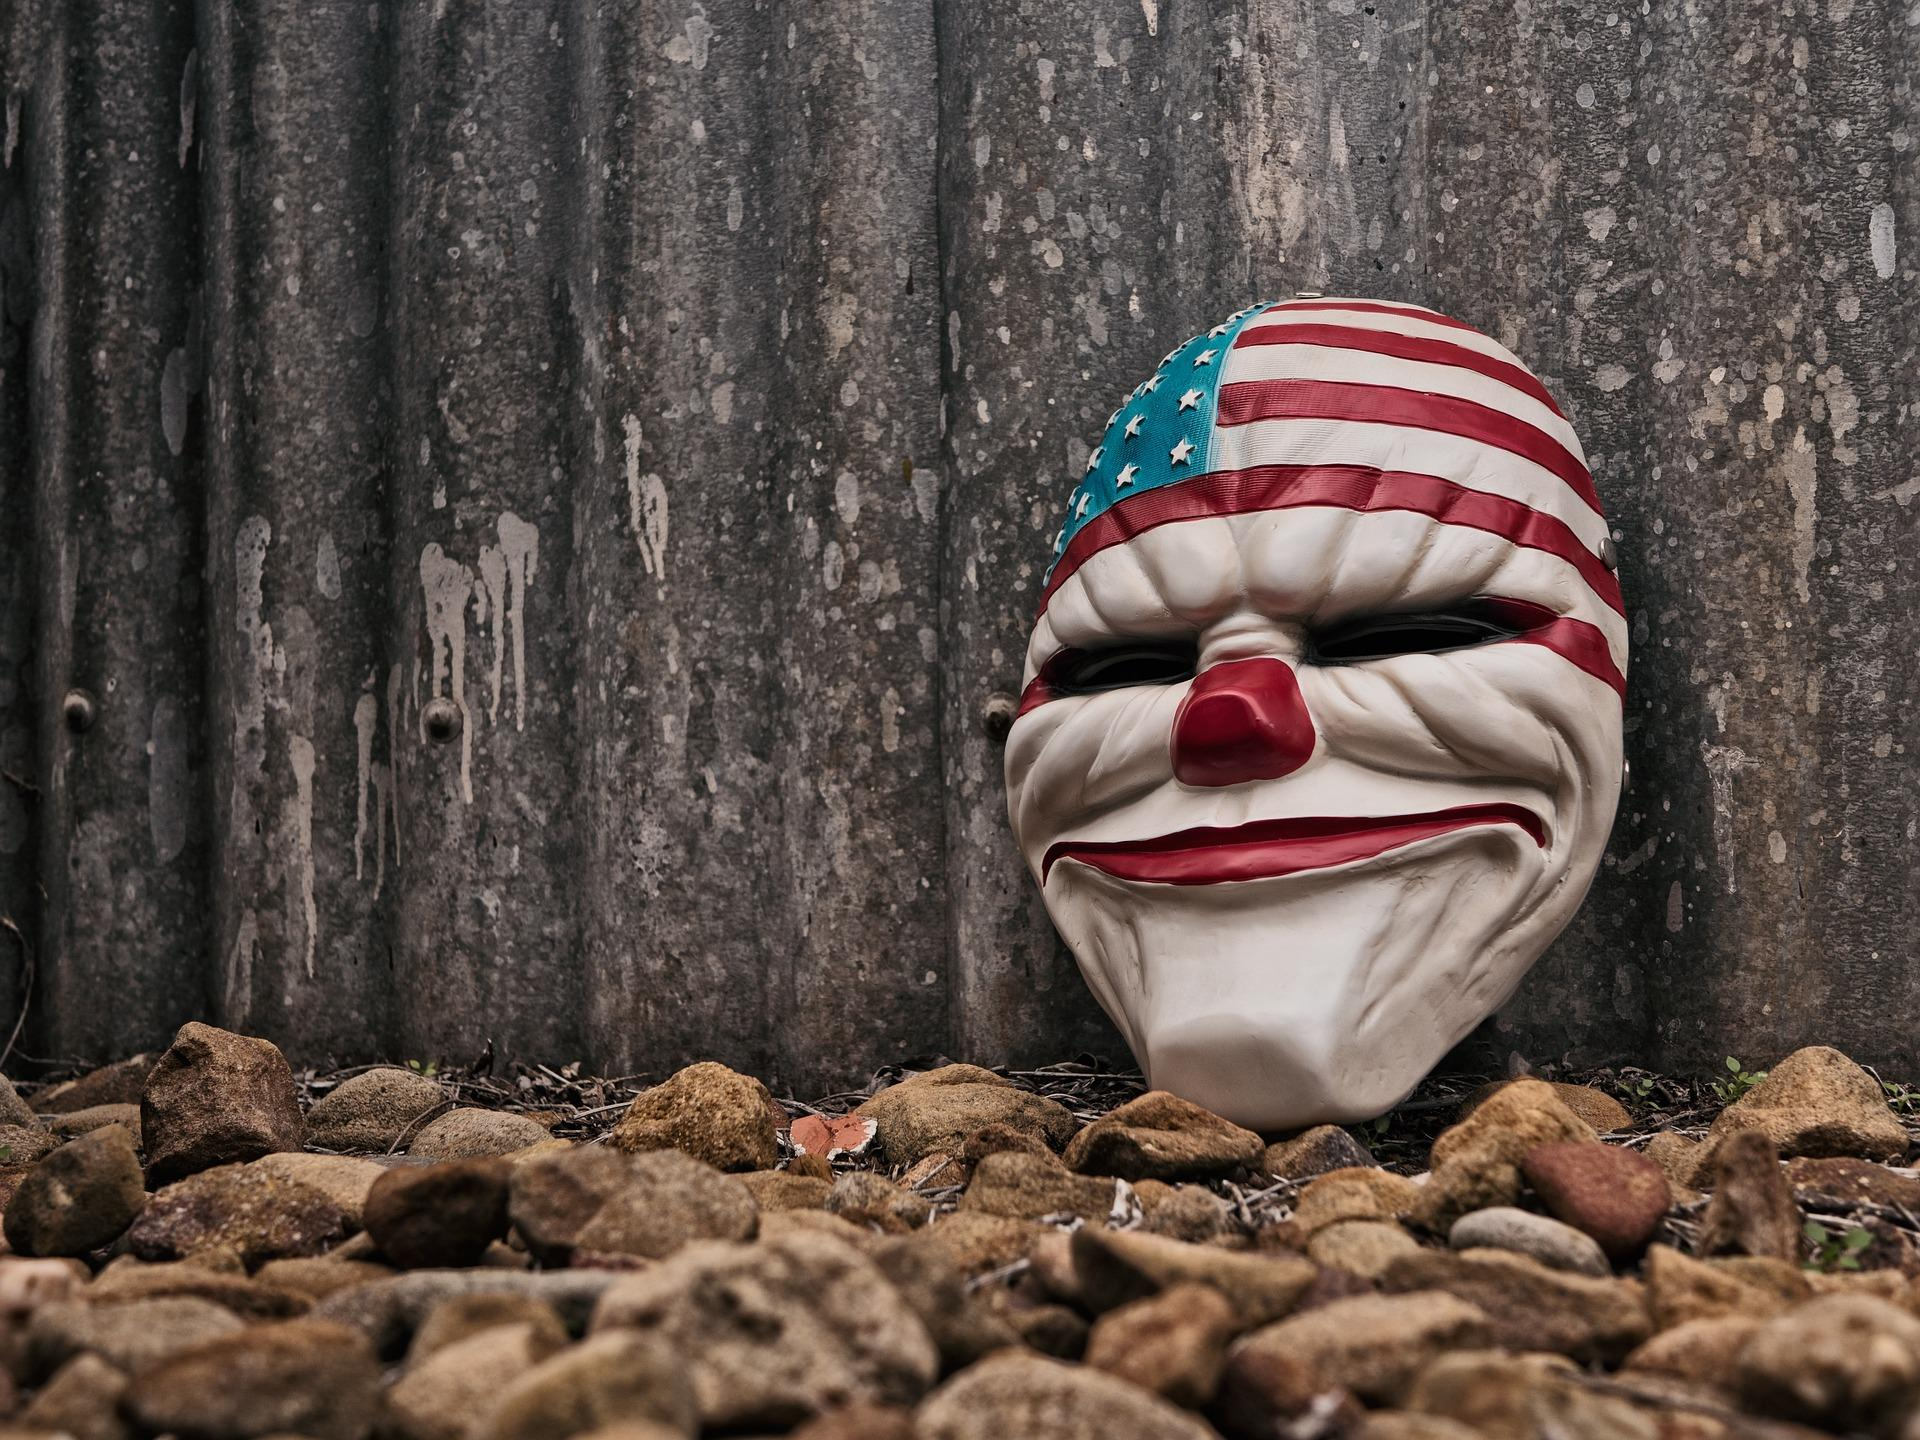 Democrats' America: The Heart of Darkness